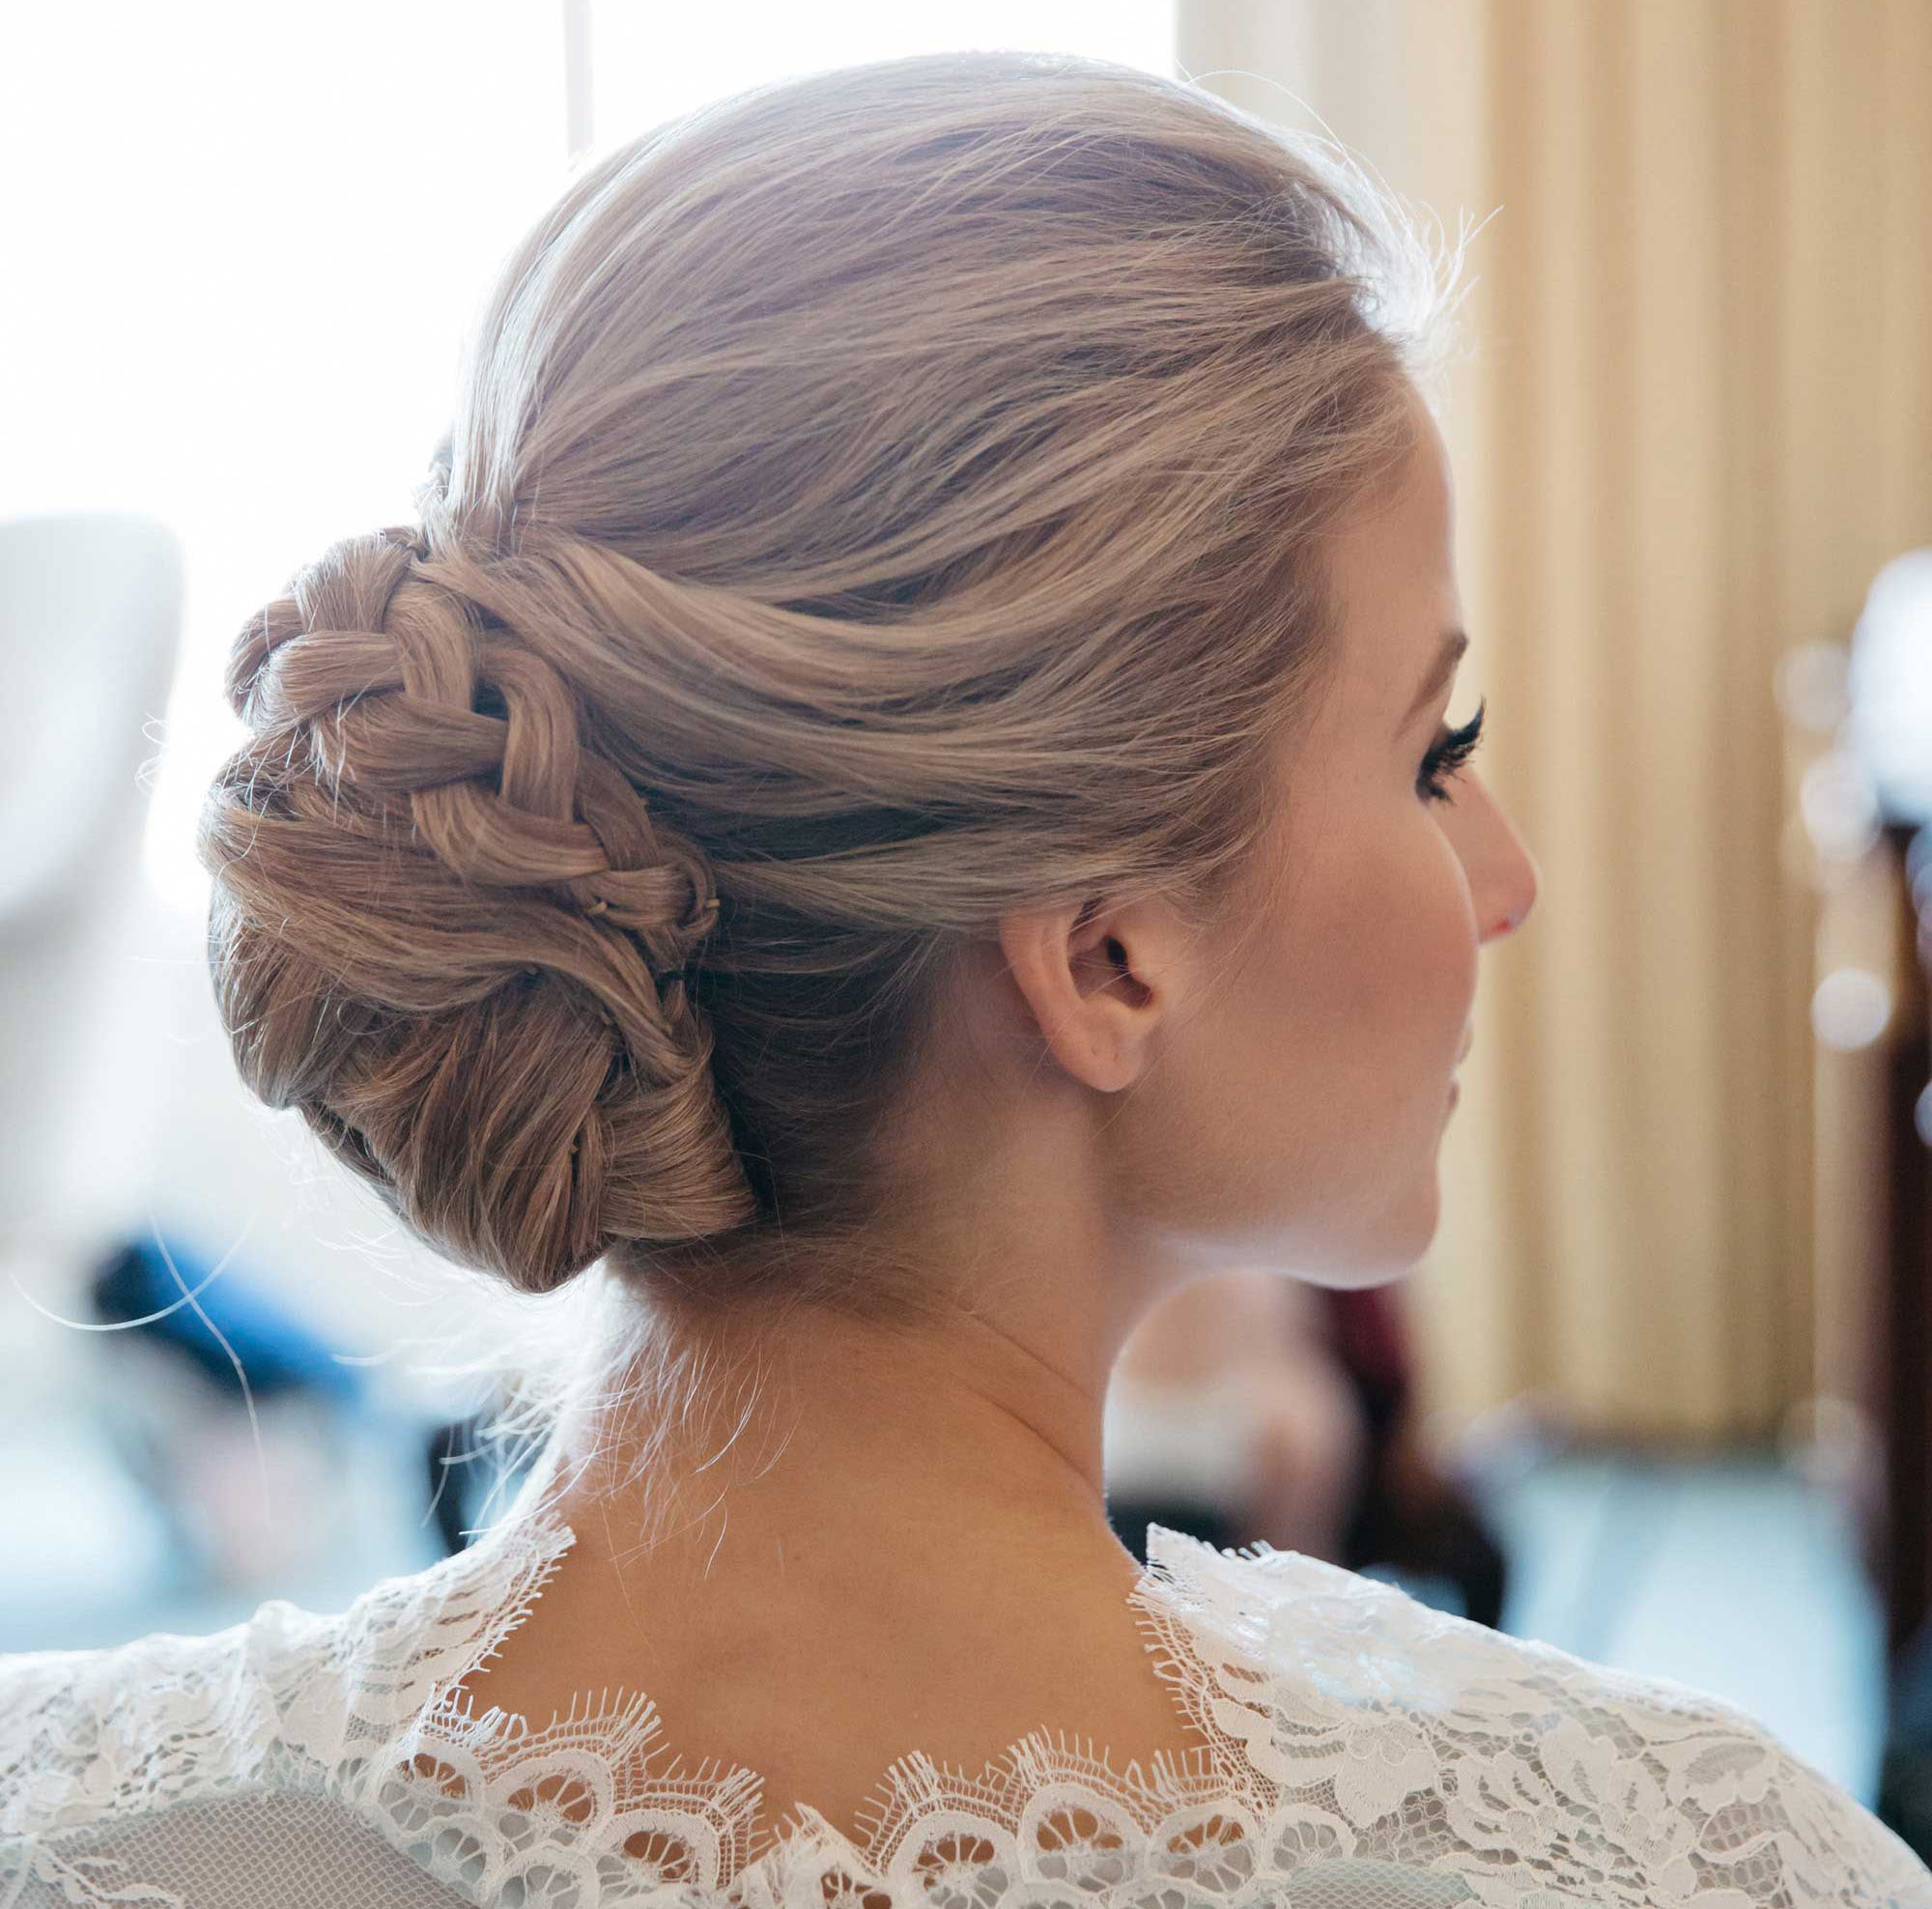 Wedding Hairstyle With Braids: Braided Hairstyles: 5 Ideas For Your Wedding Look